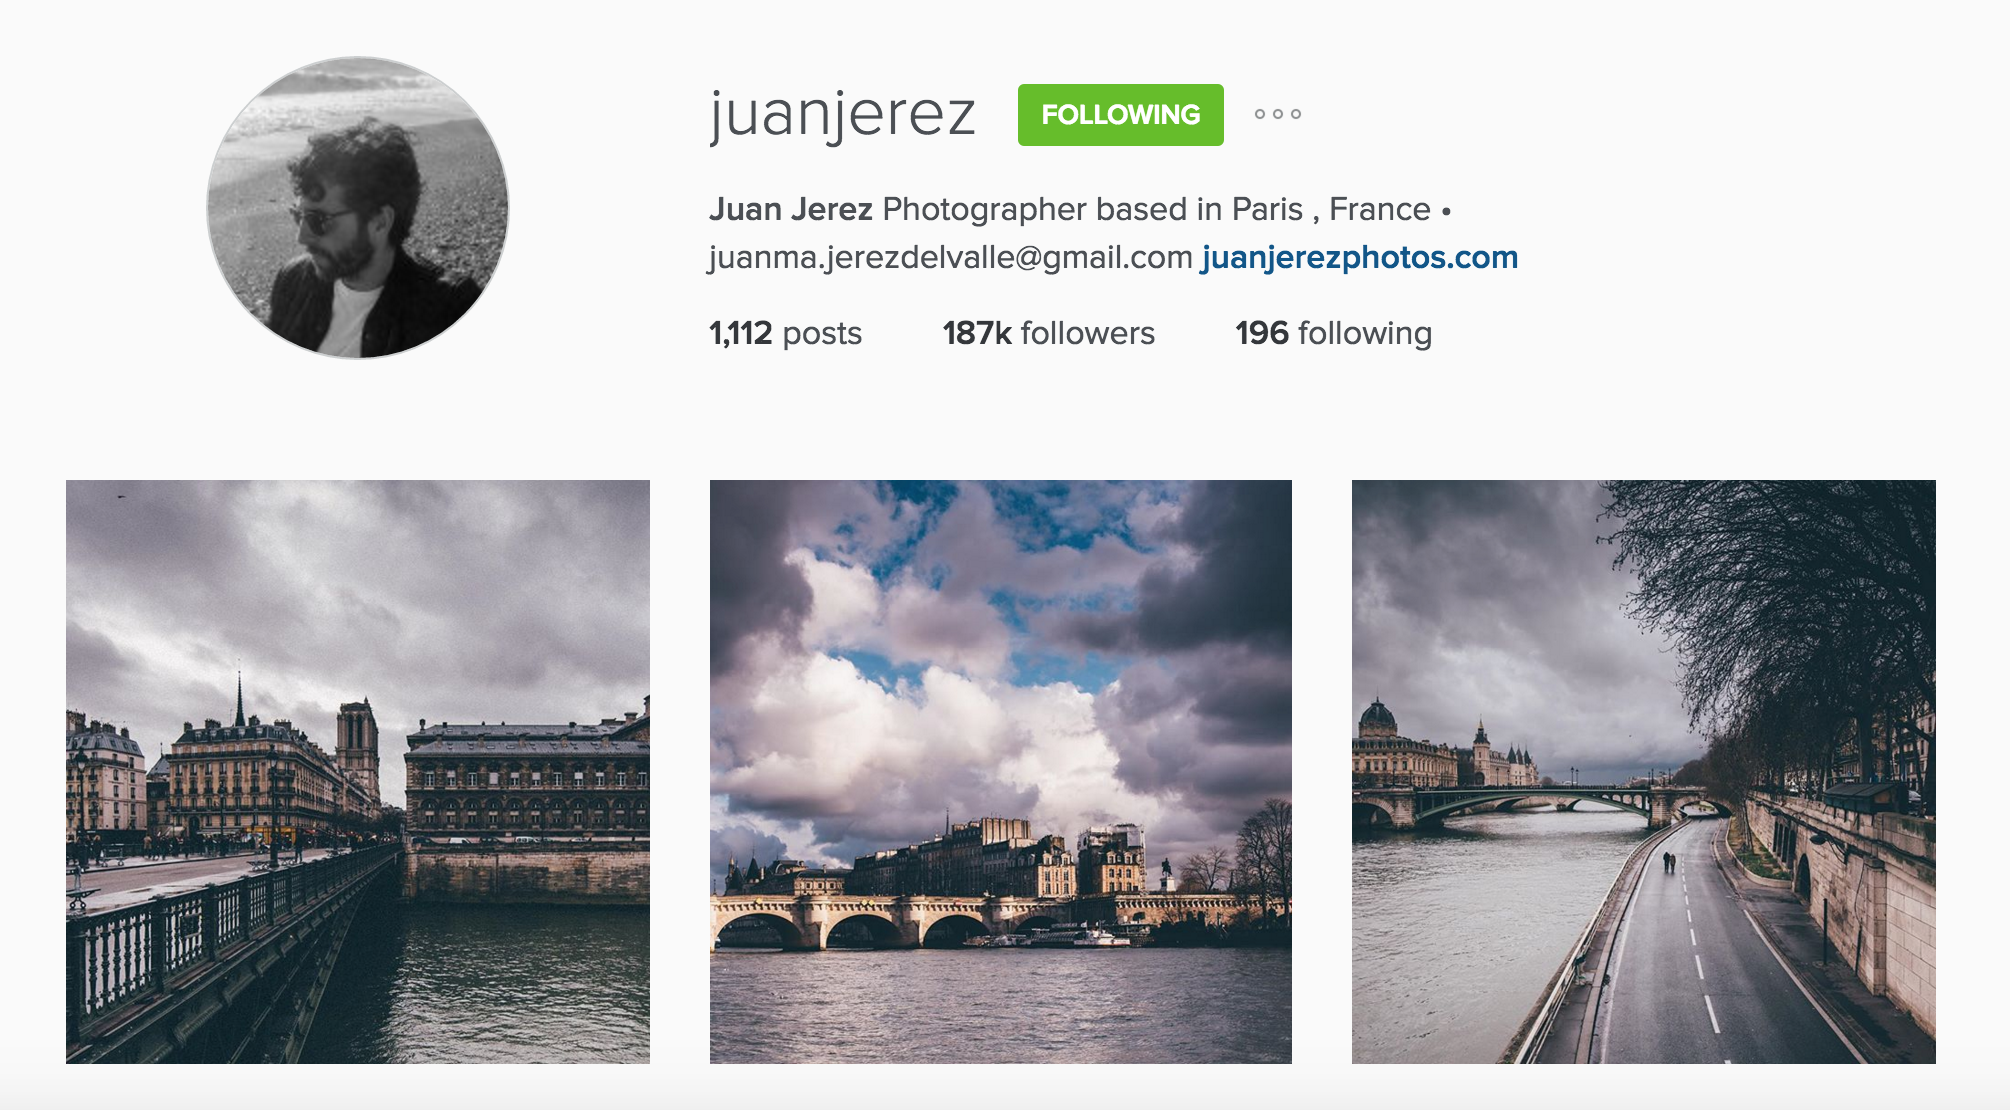 instagram cariboo paris account juan jerez haussmann